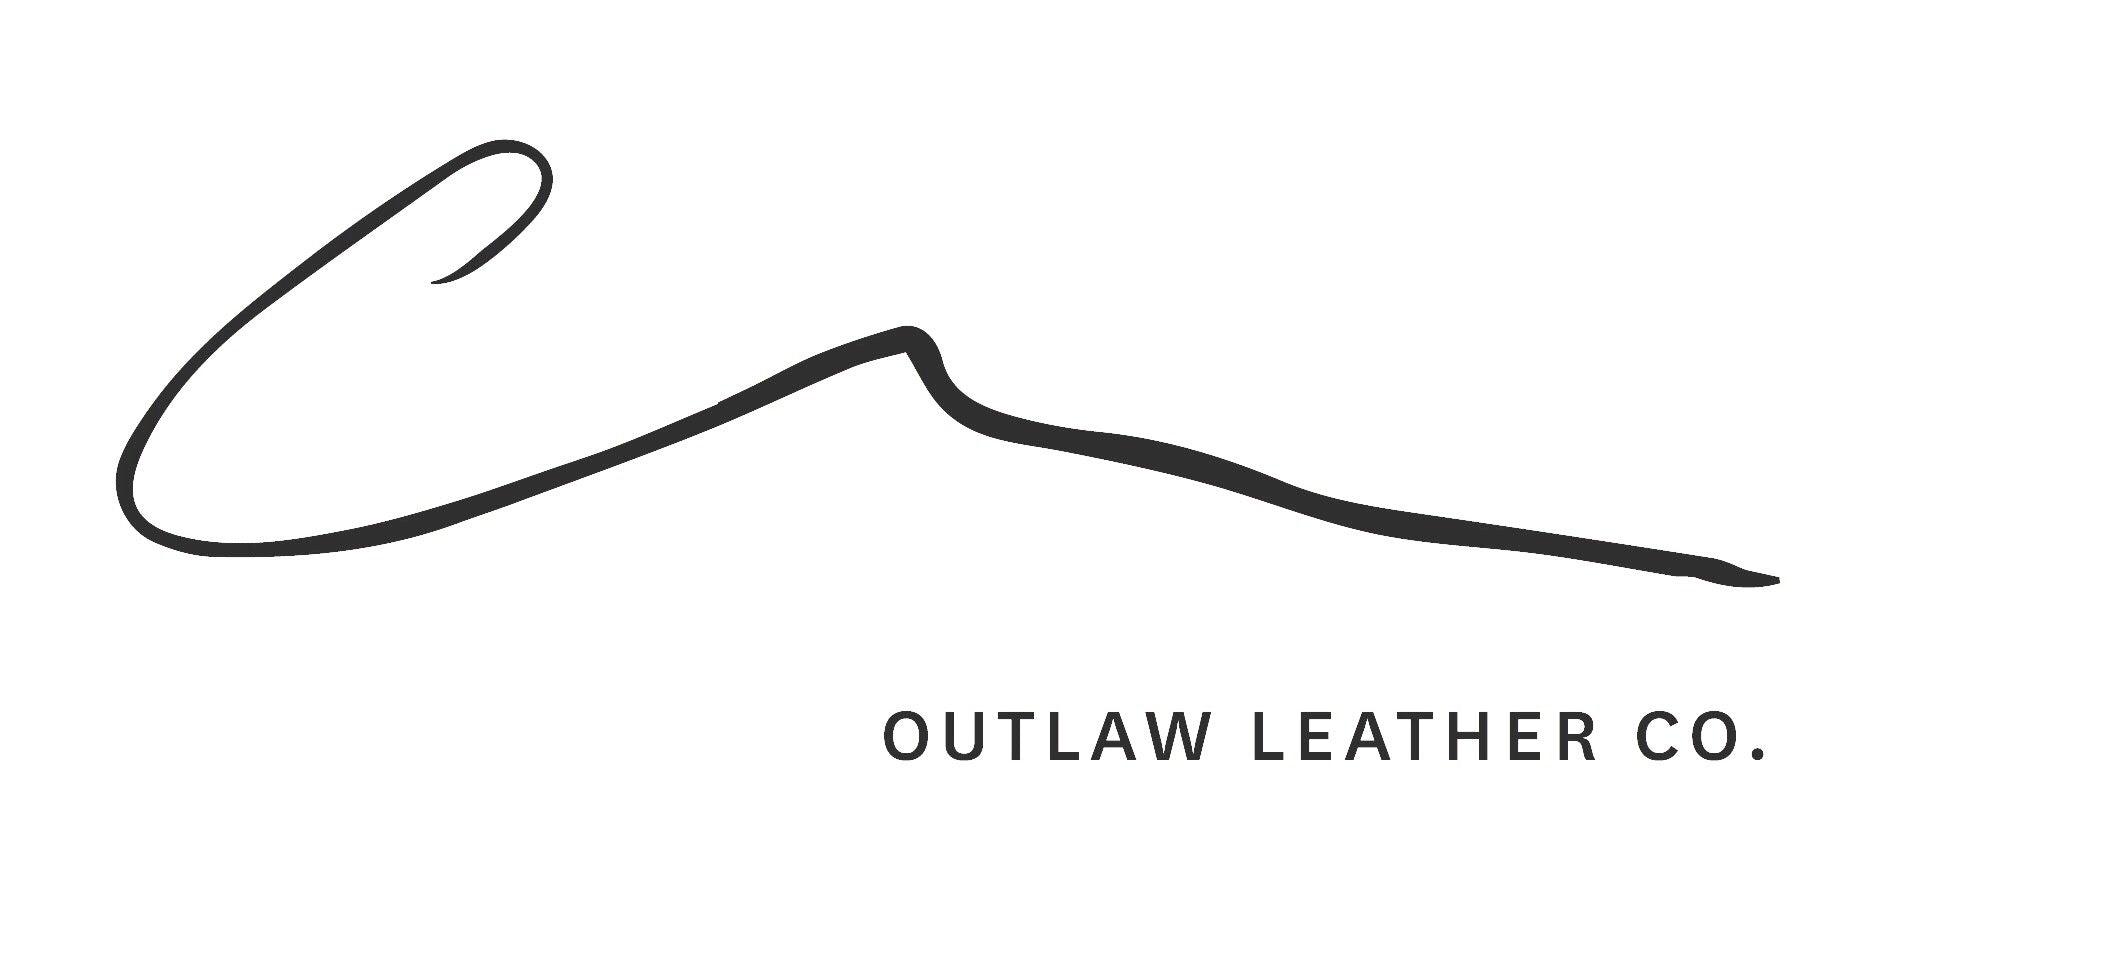 Outlaw Leather Co.